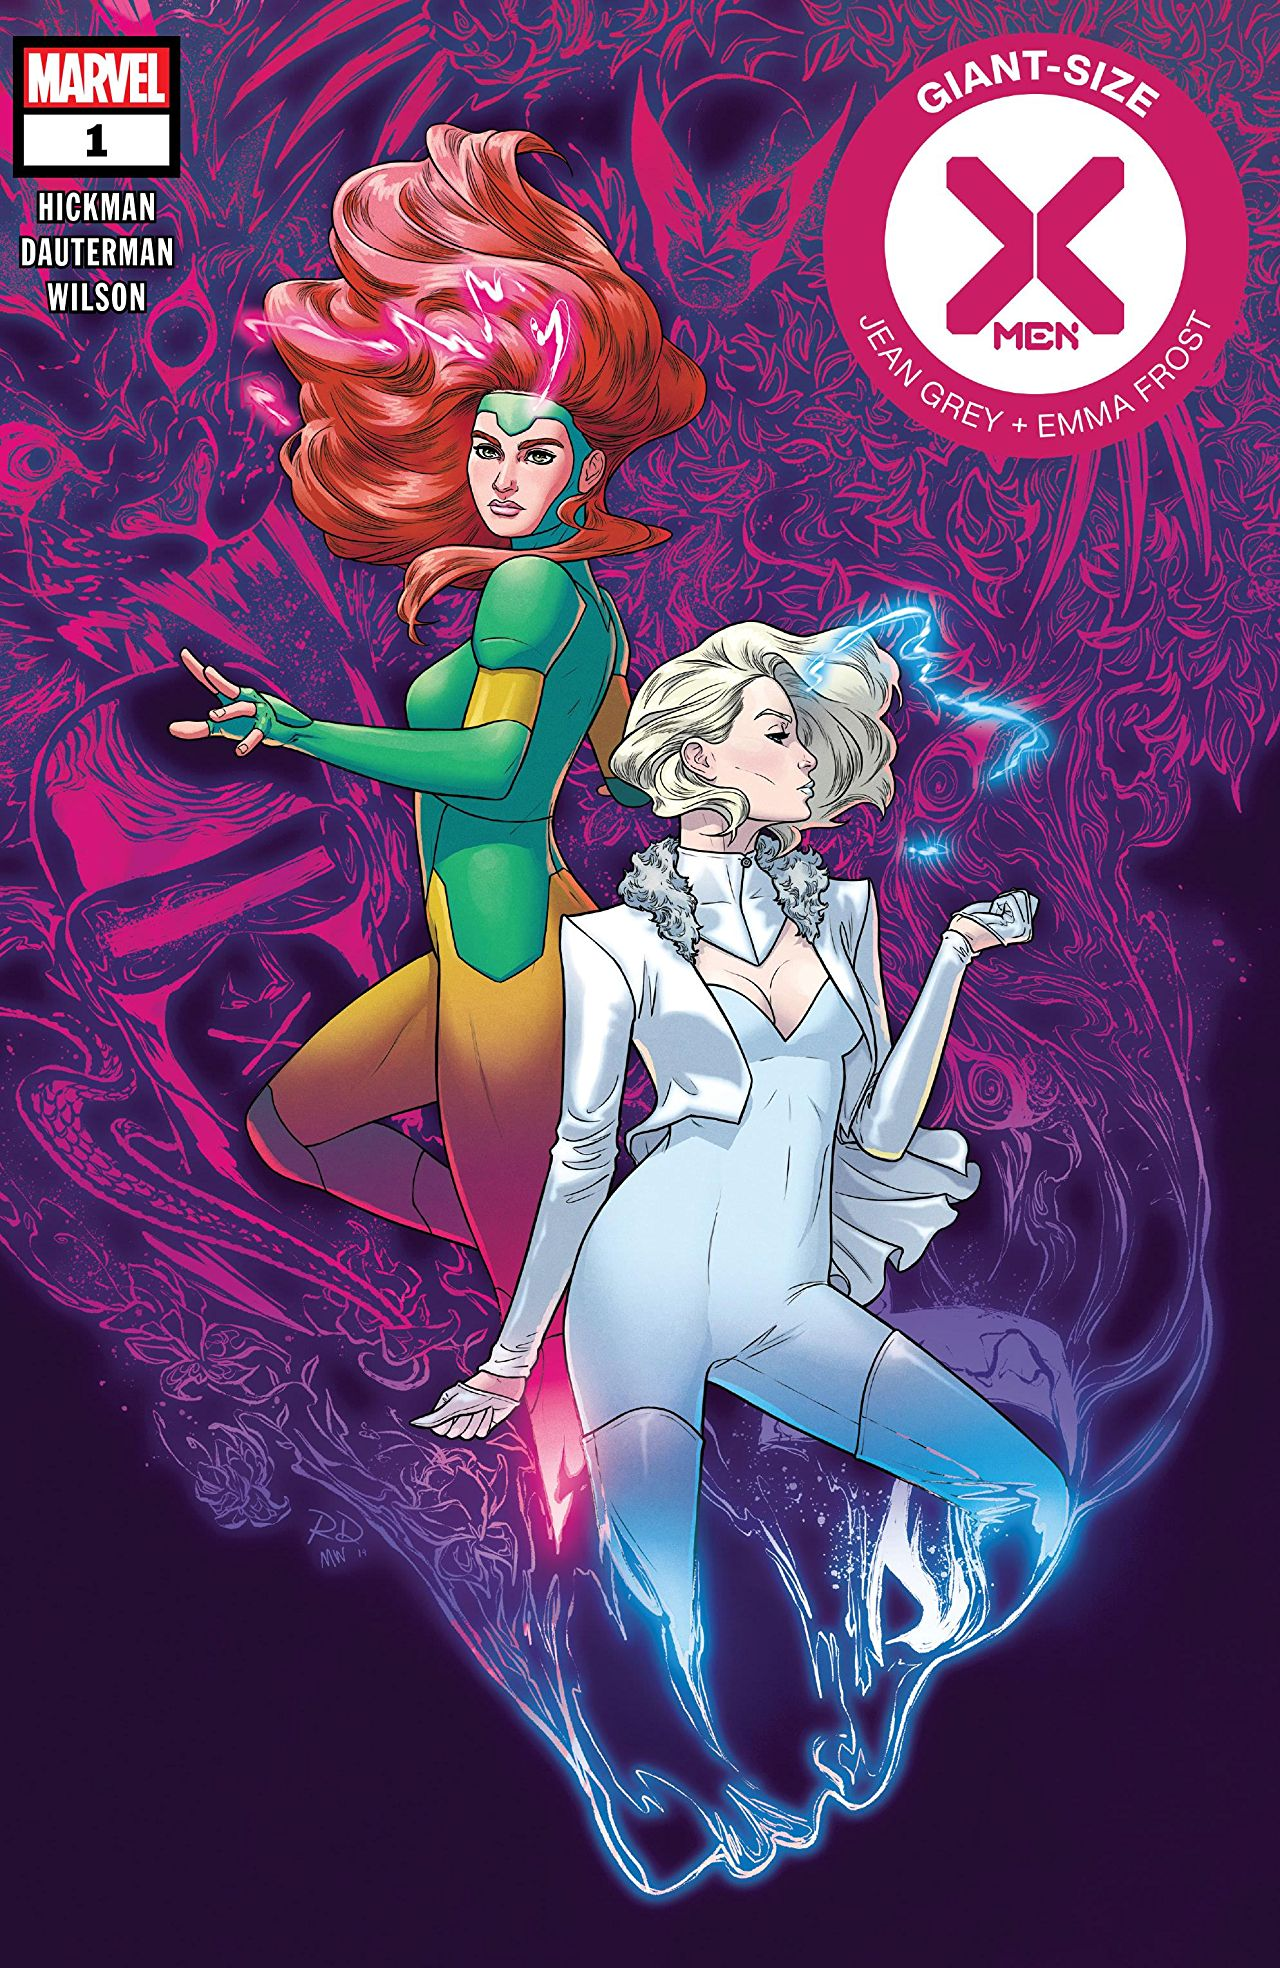 Giant-Size X-Men: Jean Grey and Emma Frost Vol 1